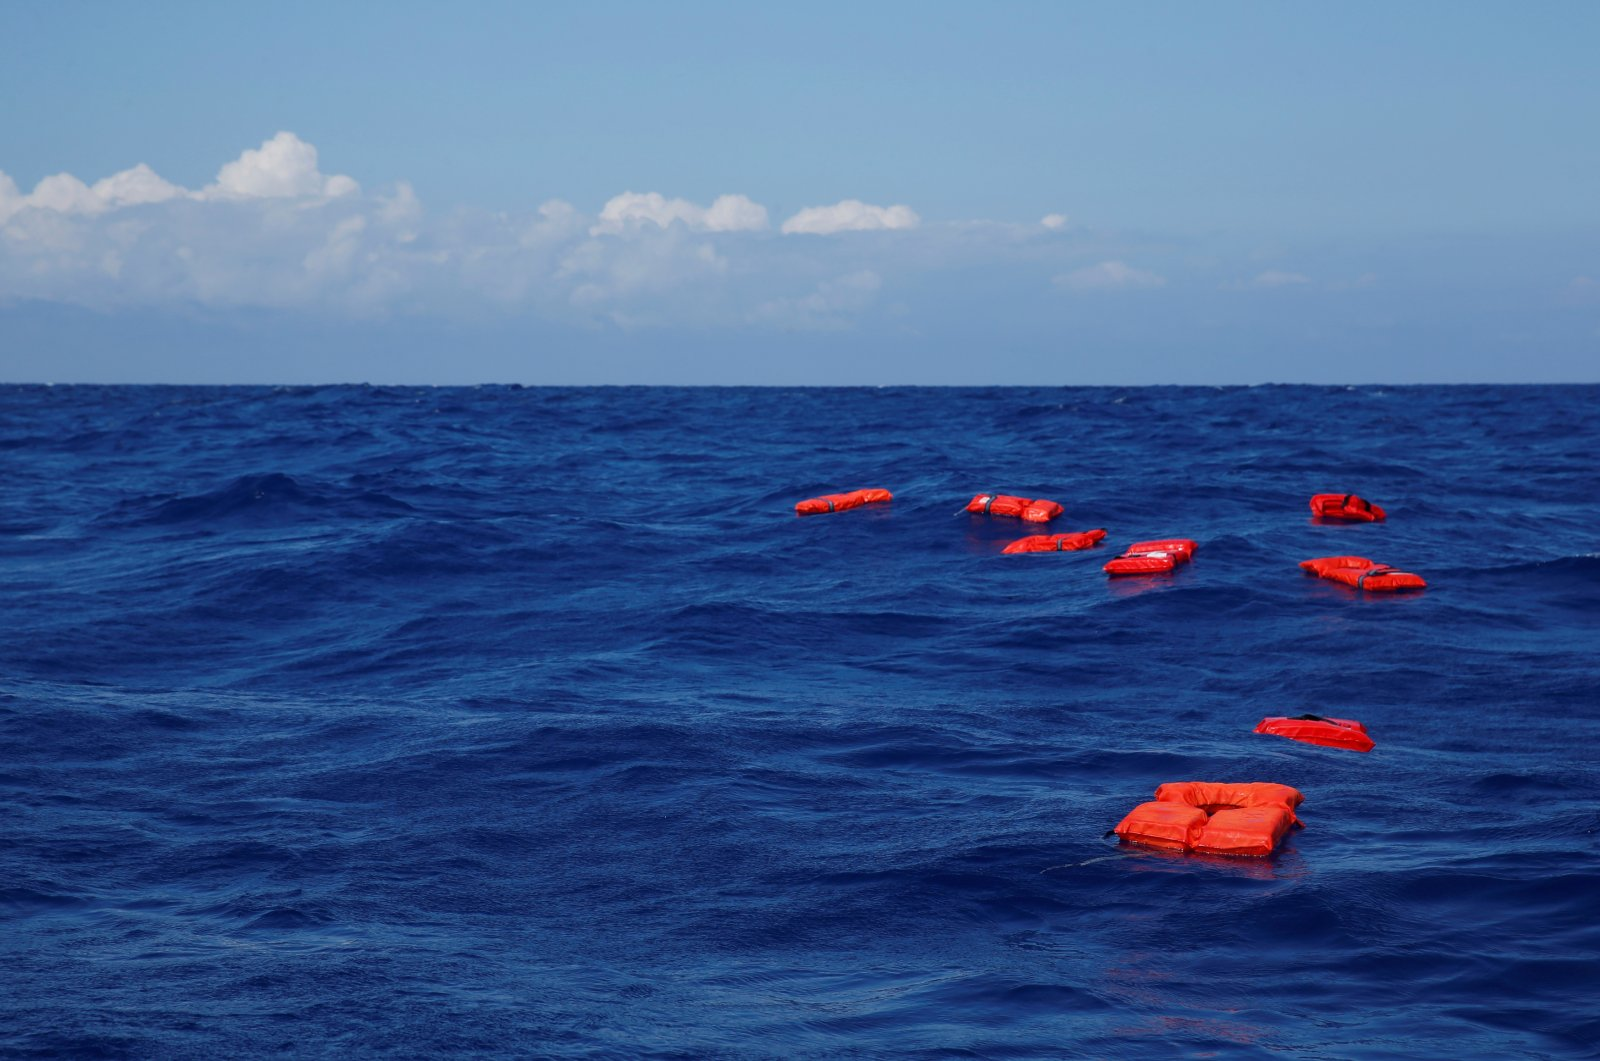 Life jackets float on the water during a training exercise by the German NGO Sea-Eye migrant rescue ship 'Alan Kurdi' while on its way to the search and rescue zone off the North African coast, in the western Mediterranean Sea, August 29, 2019. (Reuters File Photo)